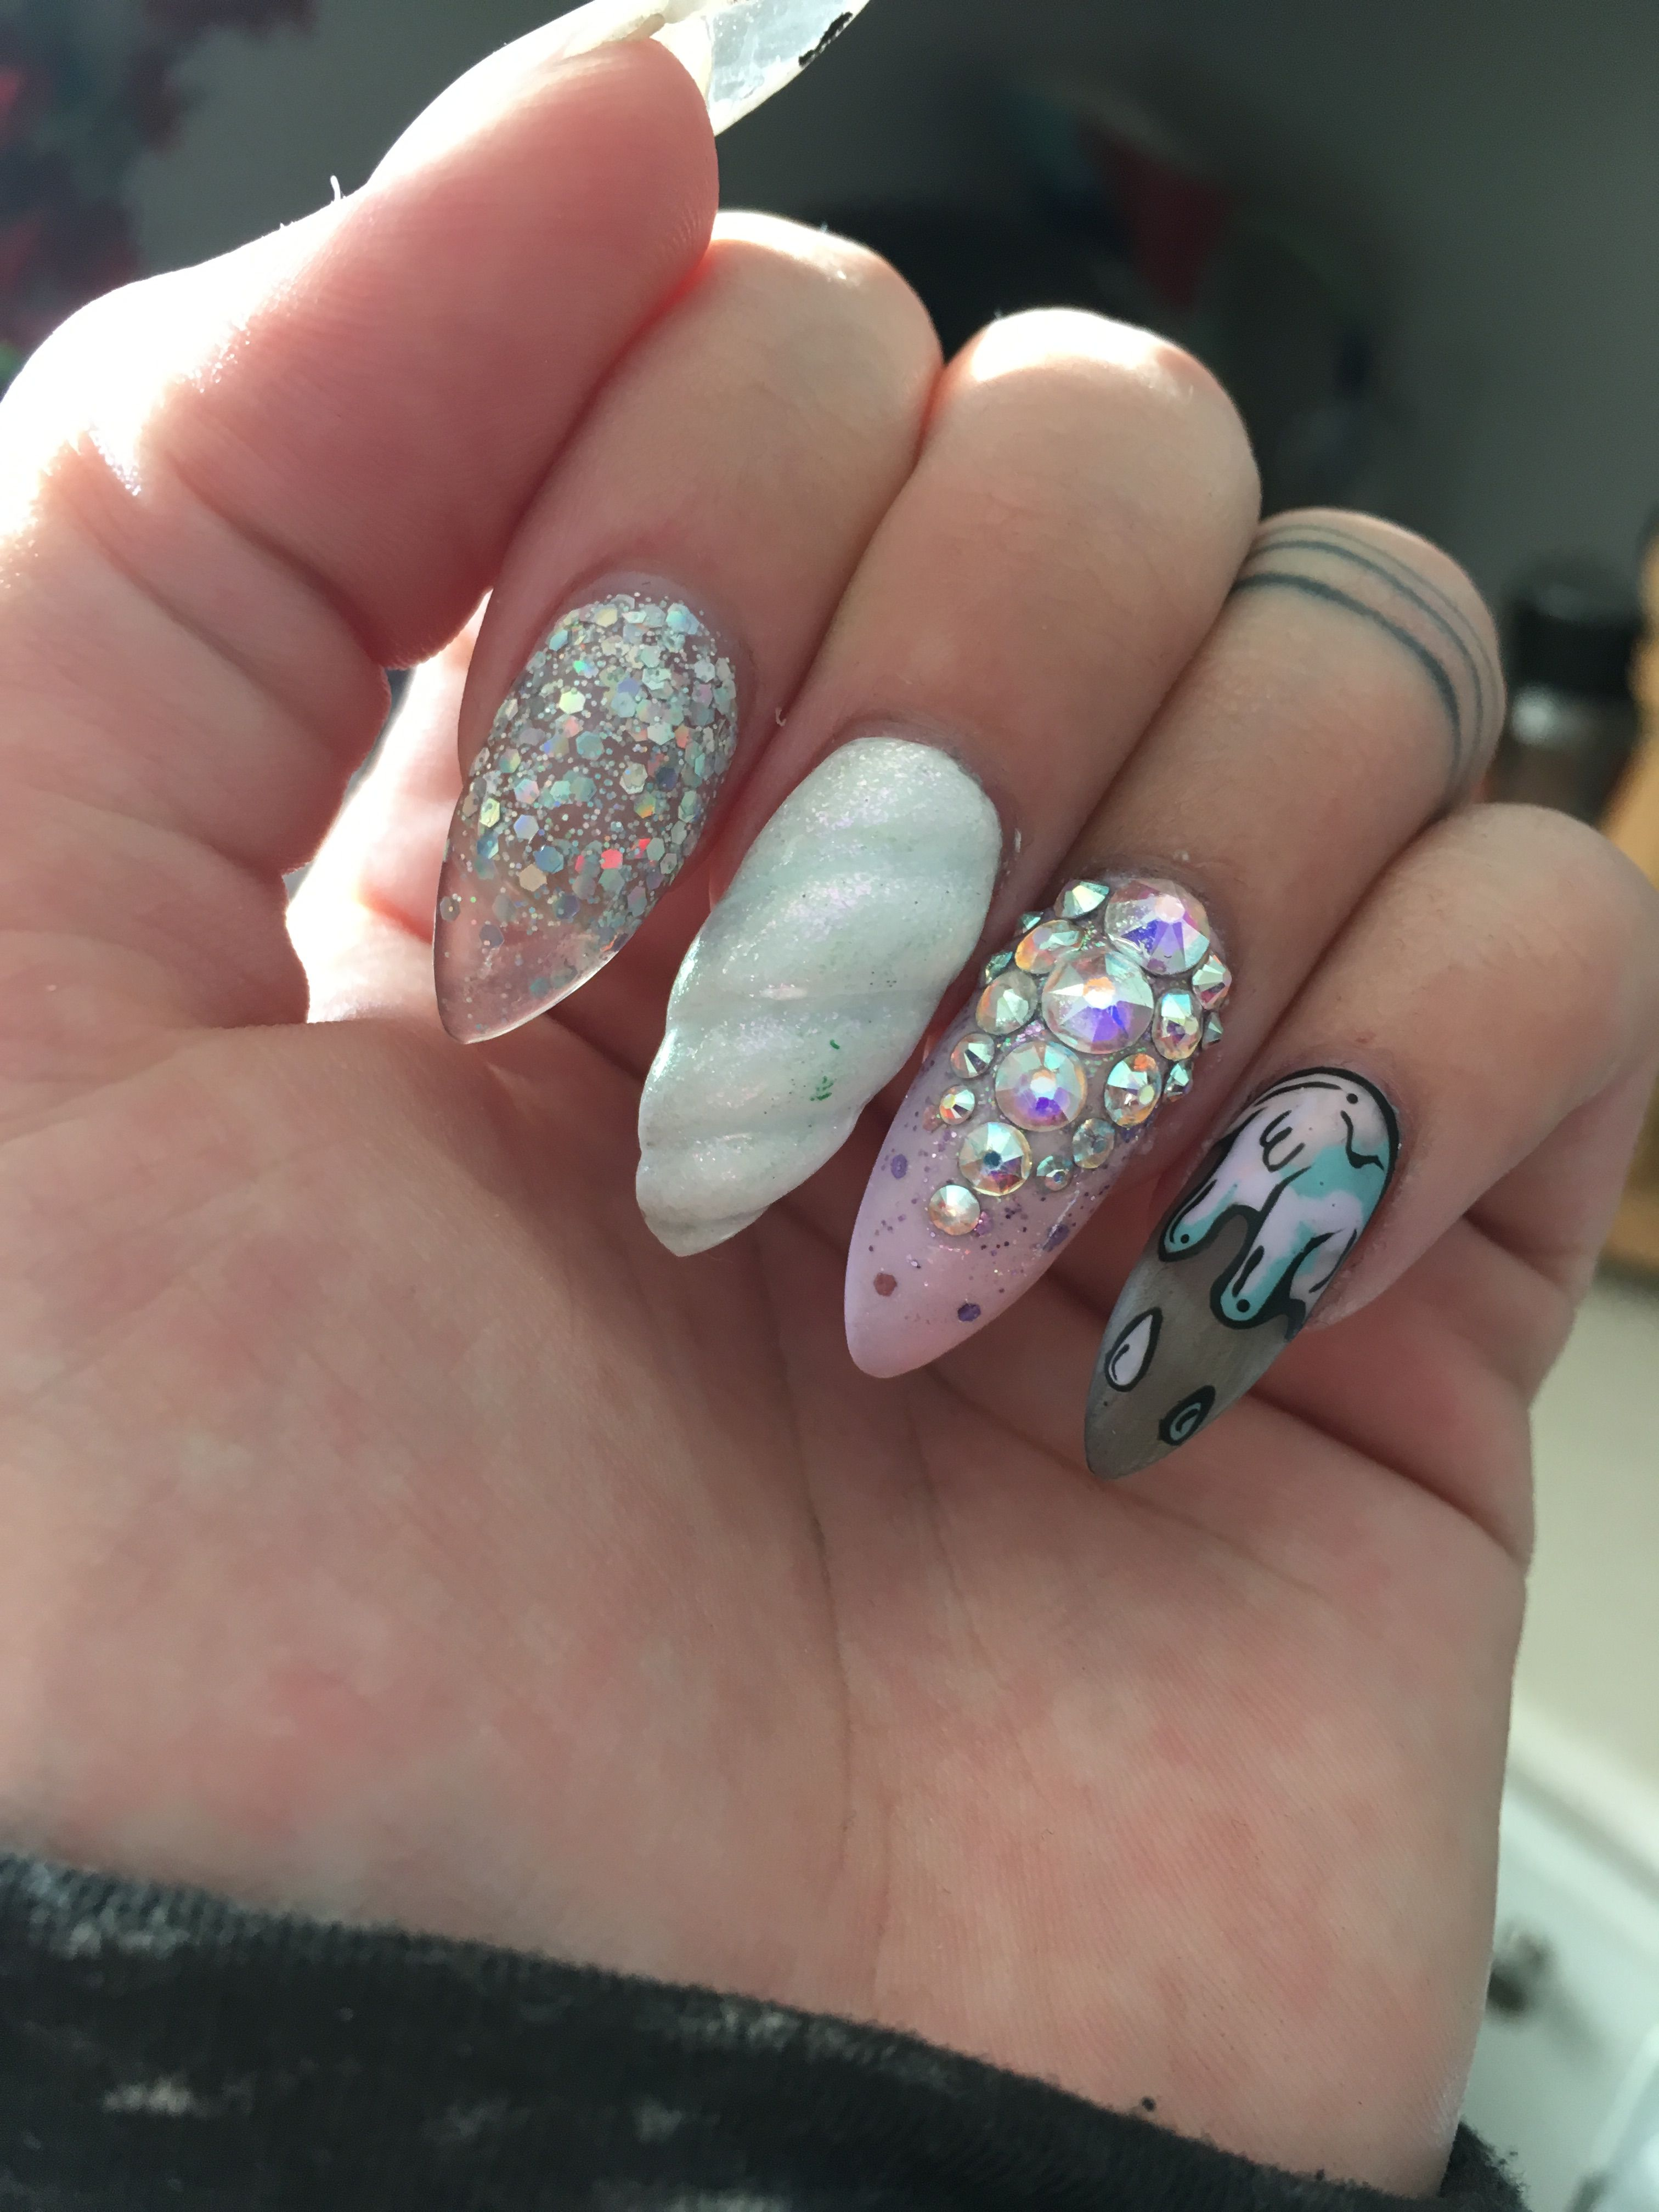 Pastel goth nails Gel nails acrylic nails nail art goth nails pastel ...